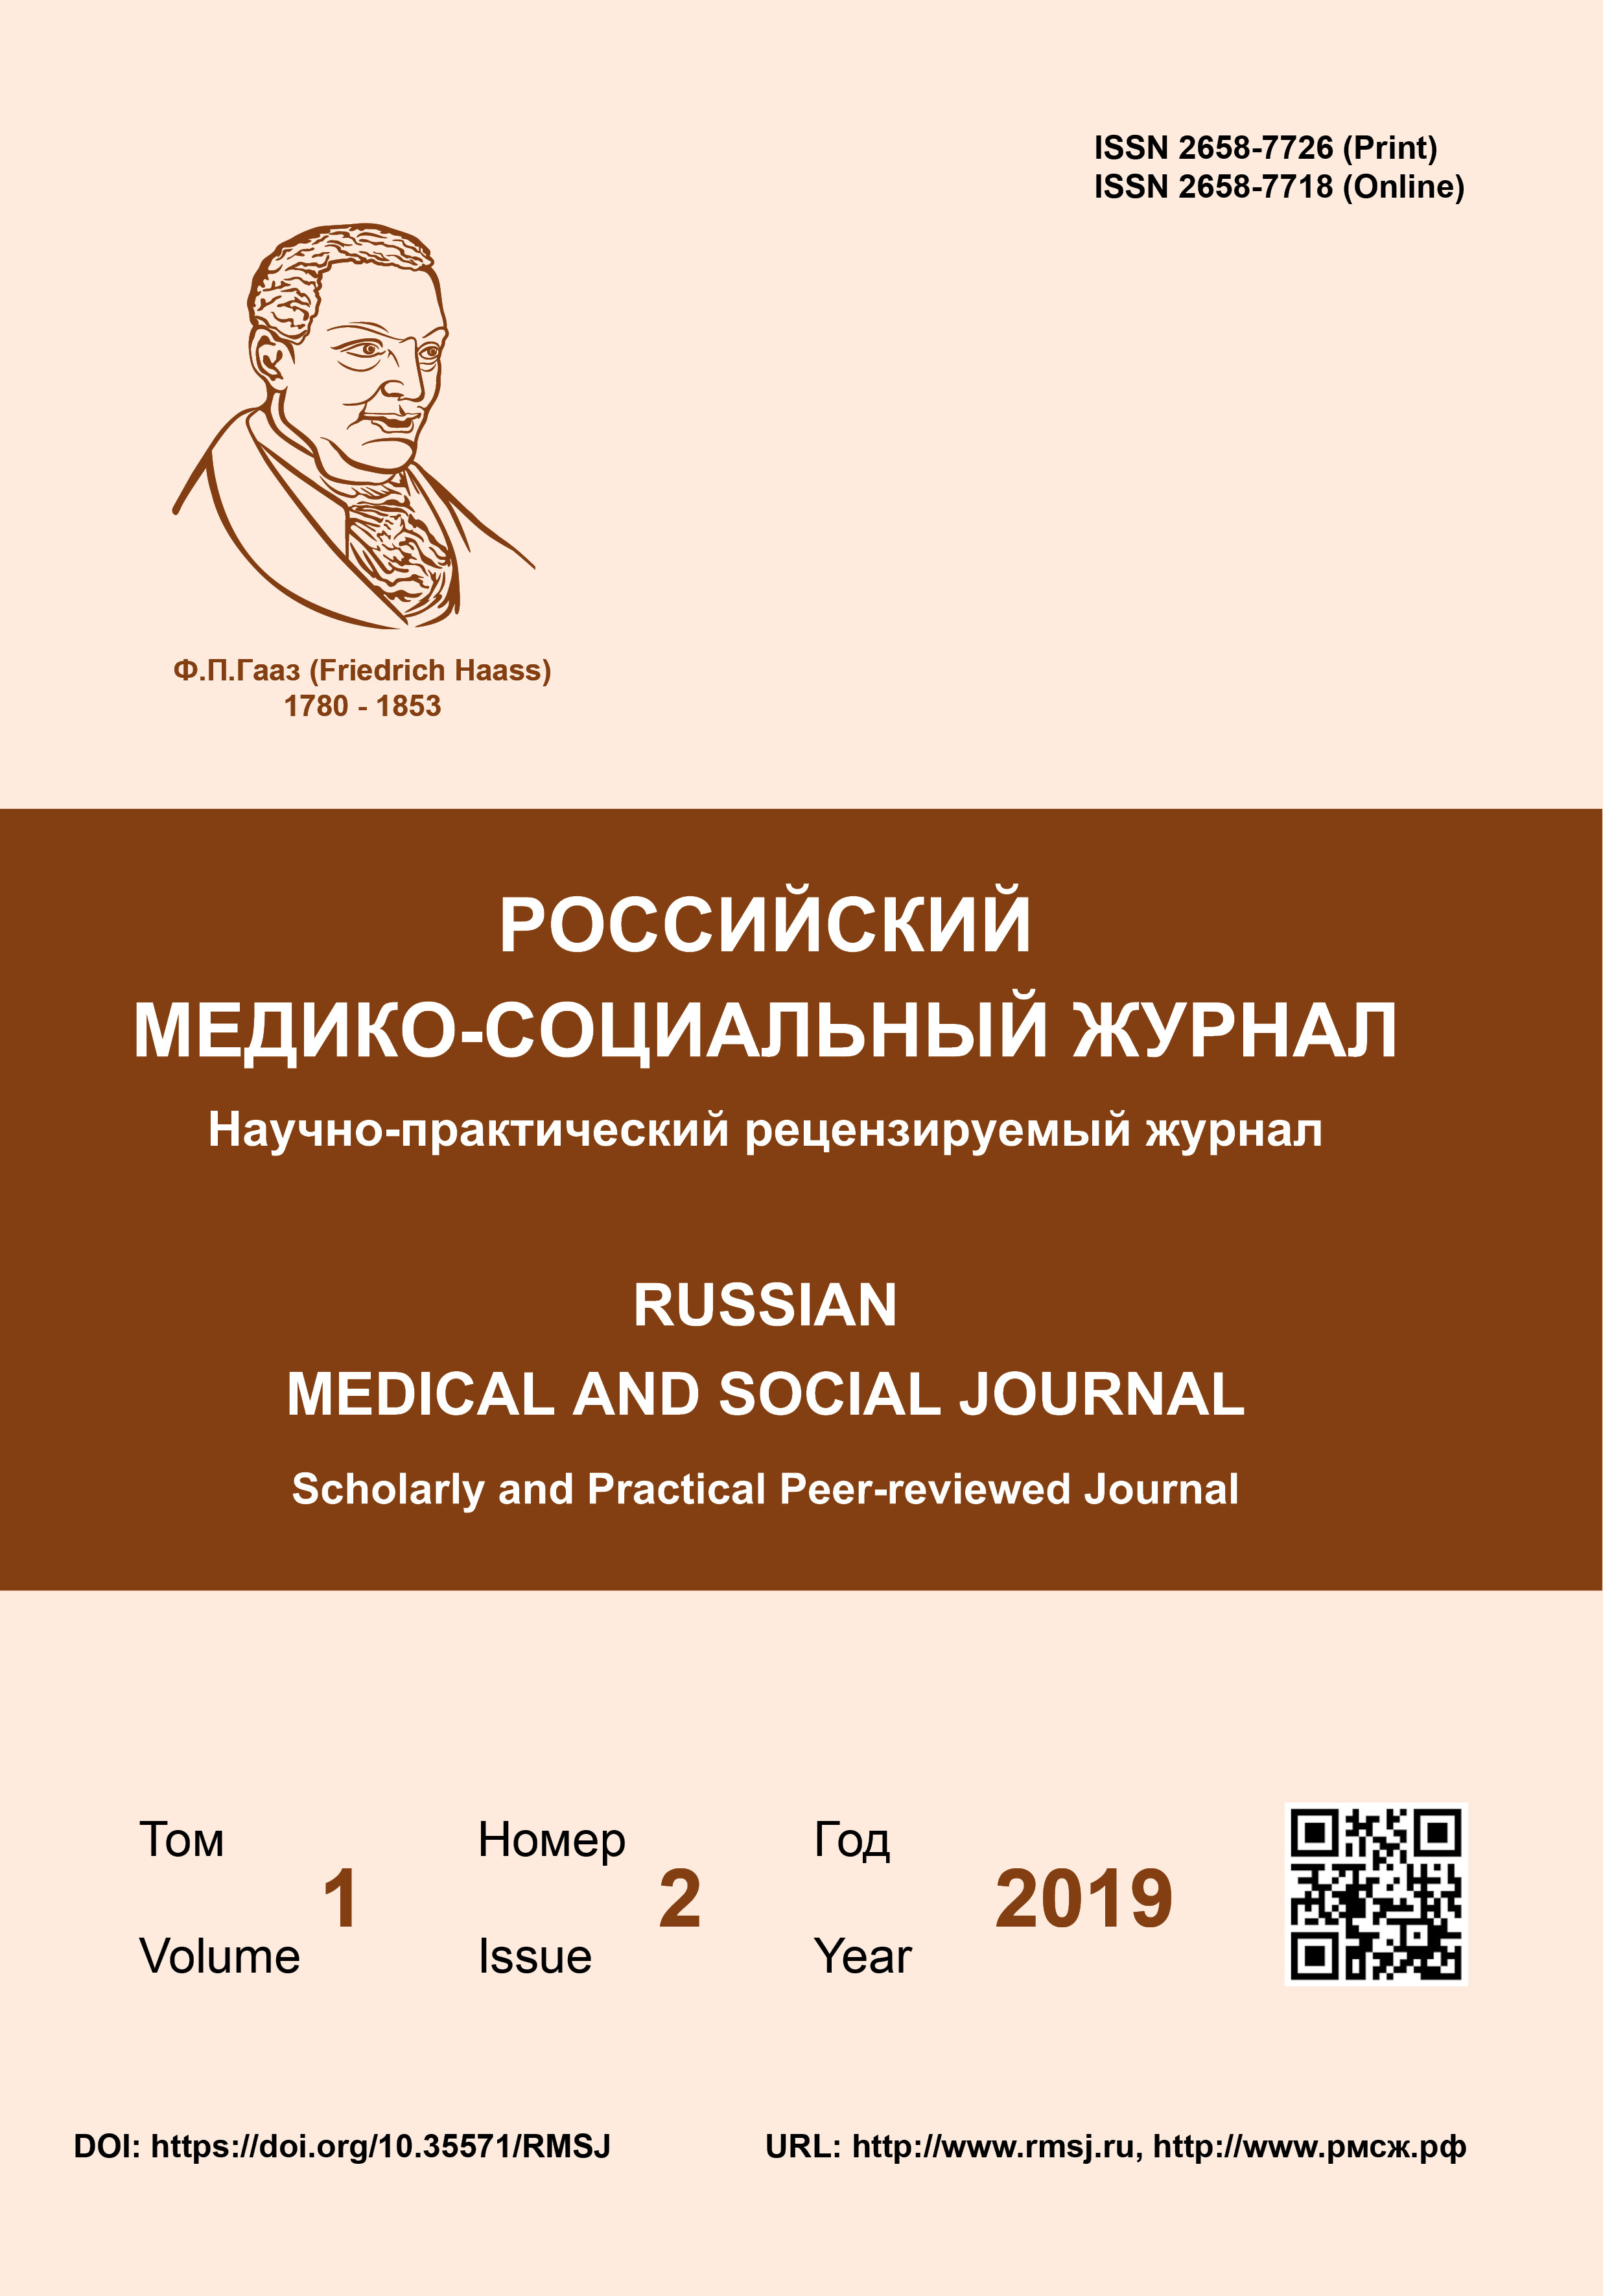 Russian Medical and Social Journal